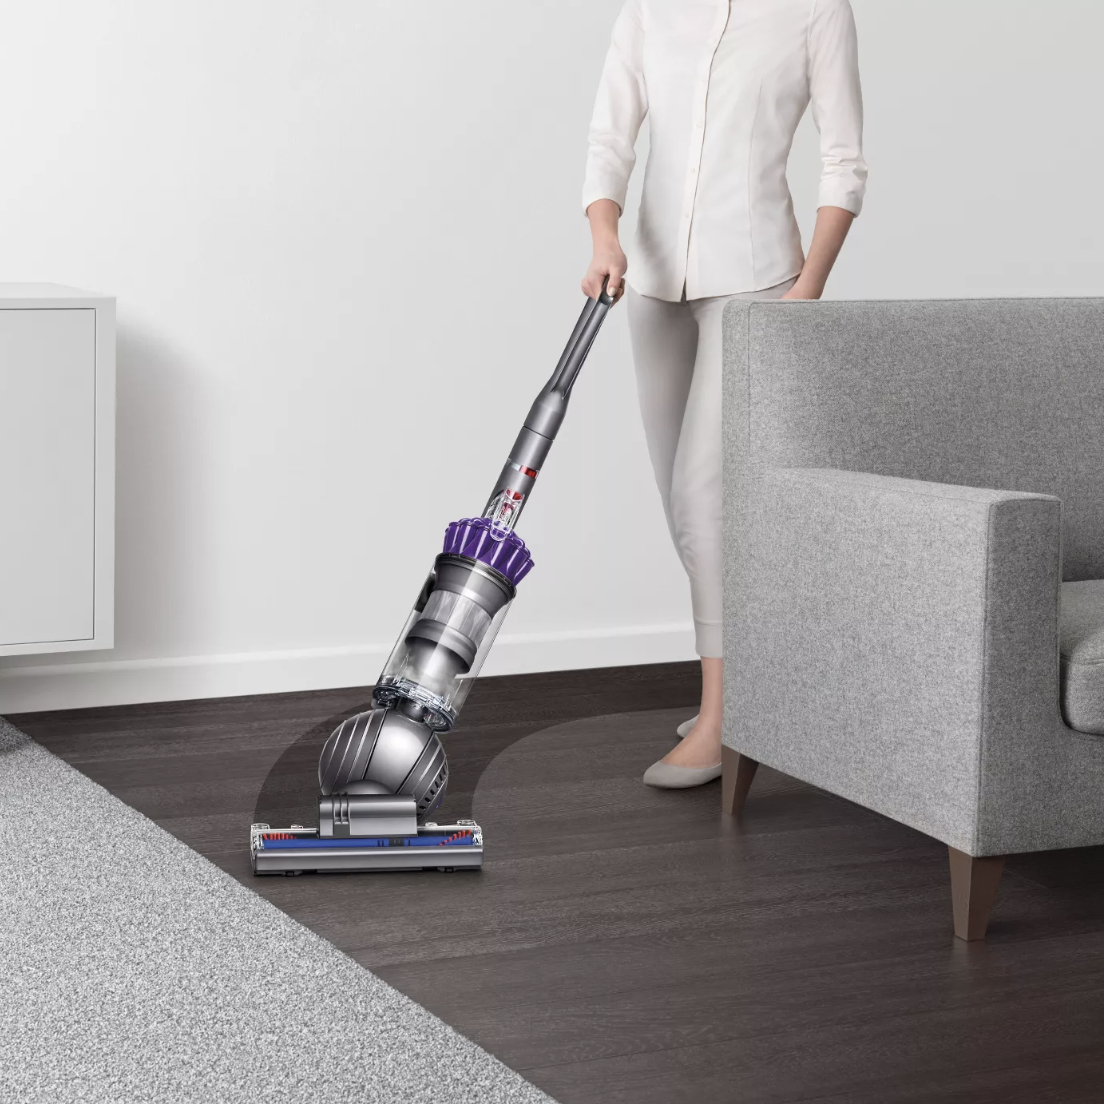 model using the Dyson vacuum cleaner